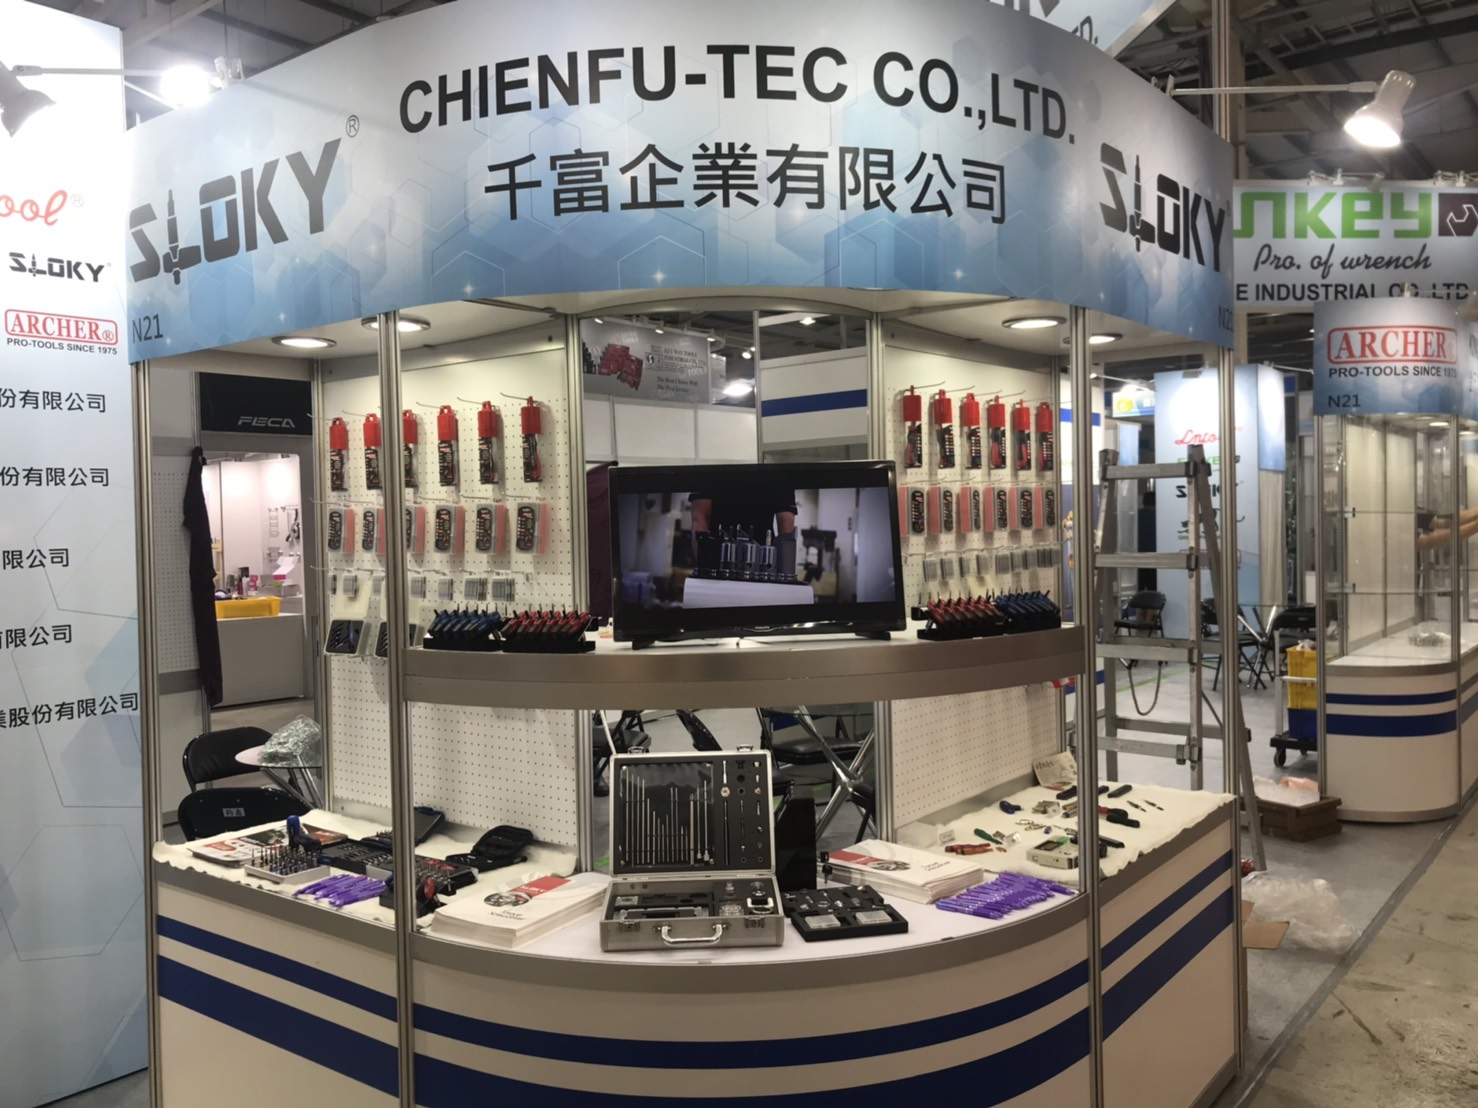 Sloky in Taiwan Hardware Show by Chienfu-Tec, booth #N21